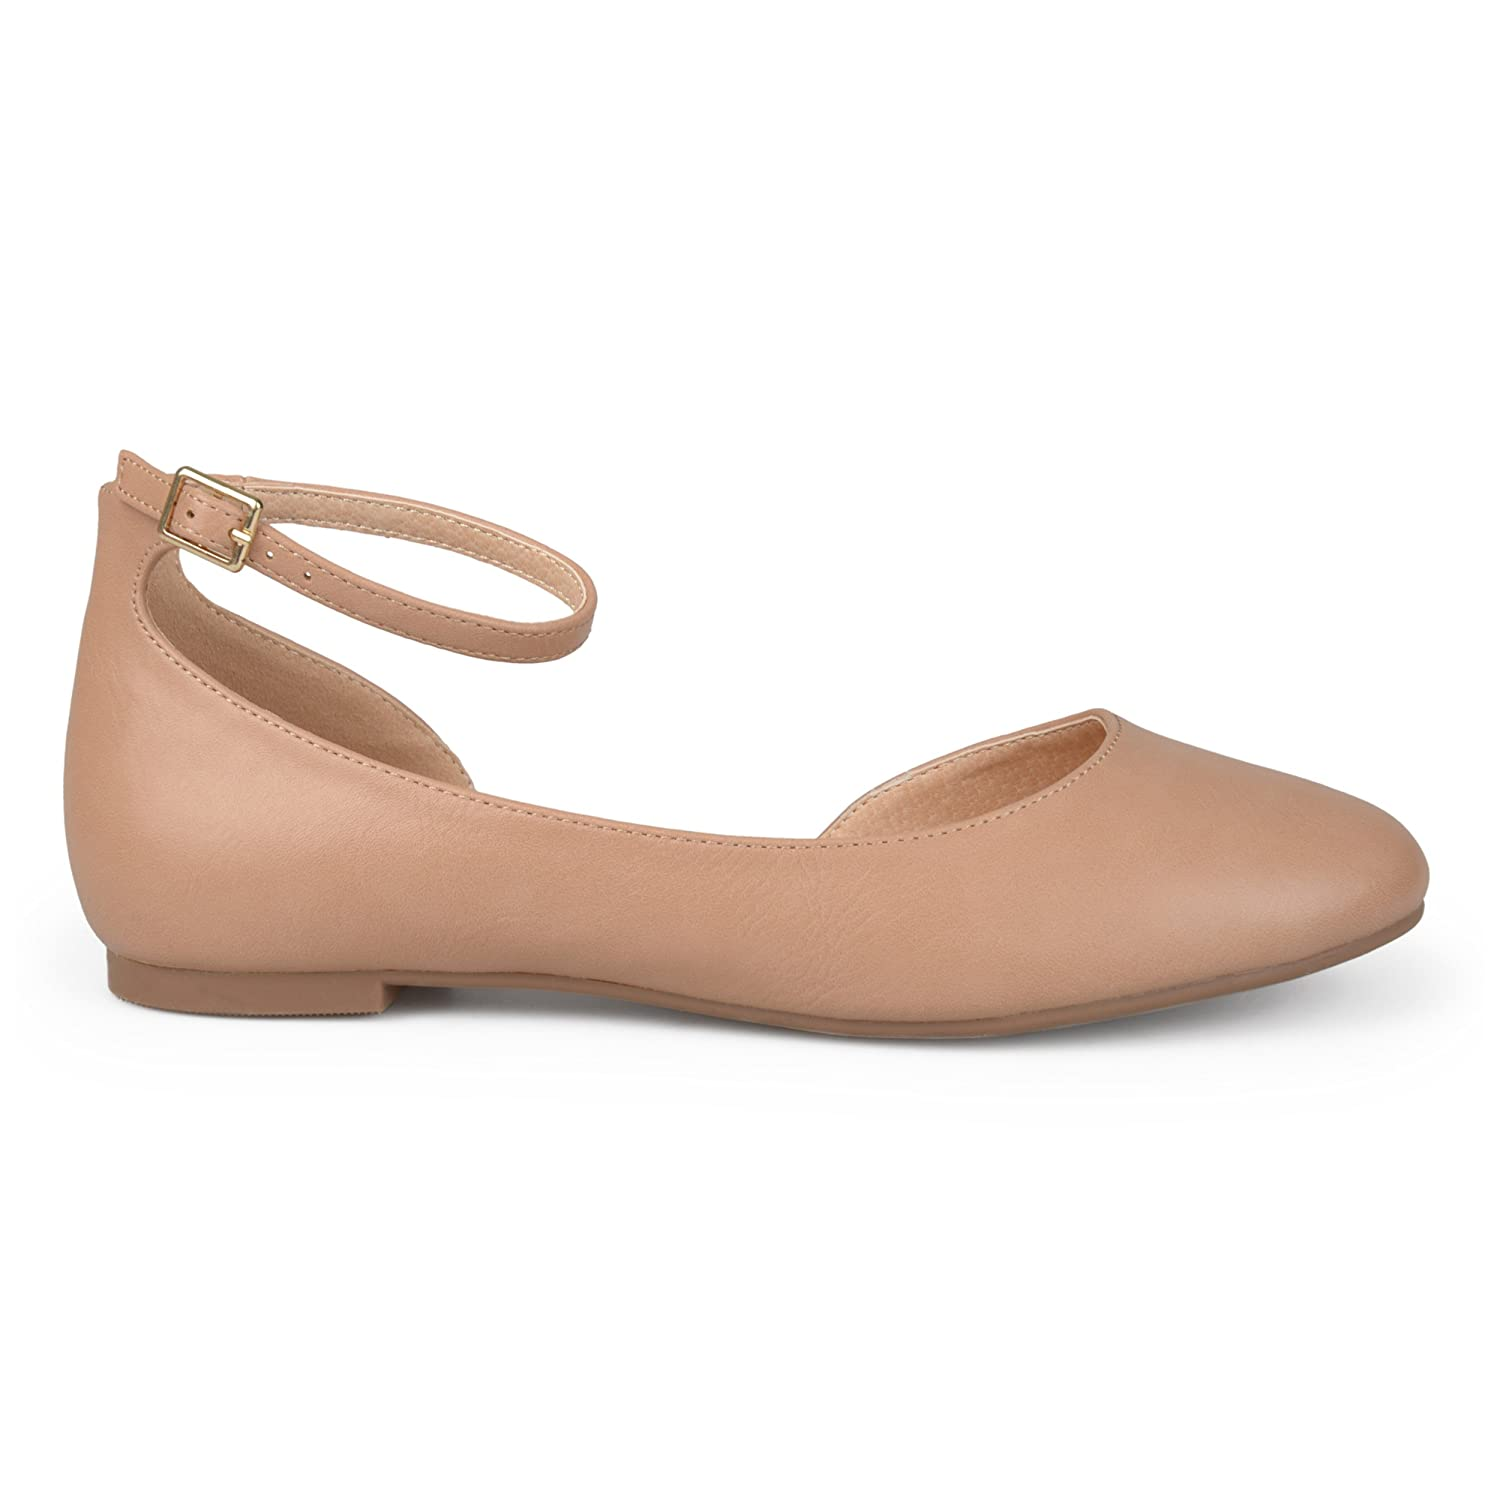 Brinley Co Womens ARO Faux Leather Wide Width Ankle Strap Round Toe D'Orsay Flats B074WFX2HP 6 B(M) US|Nude